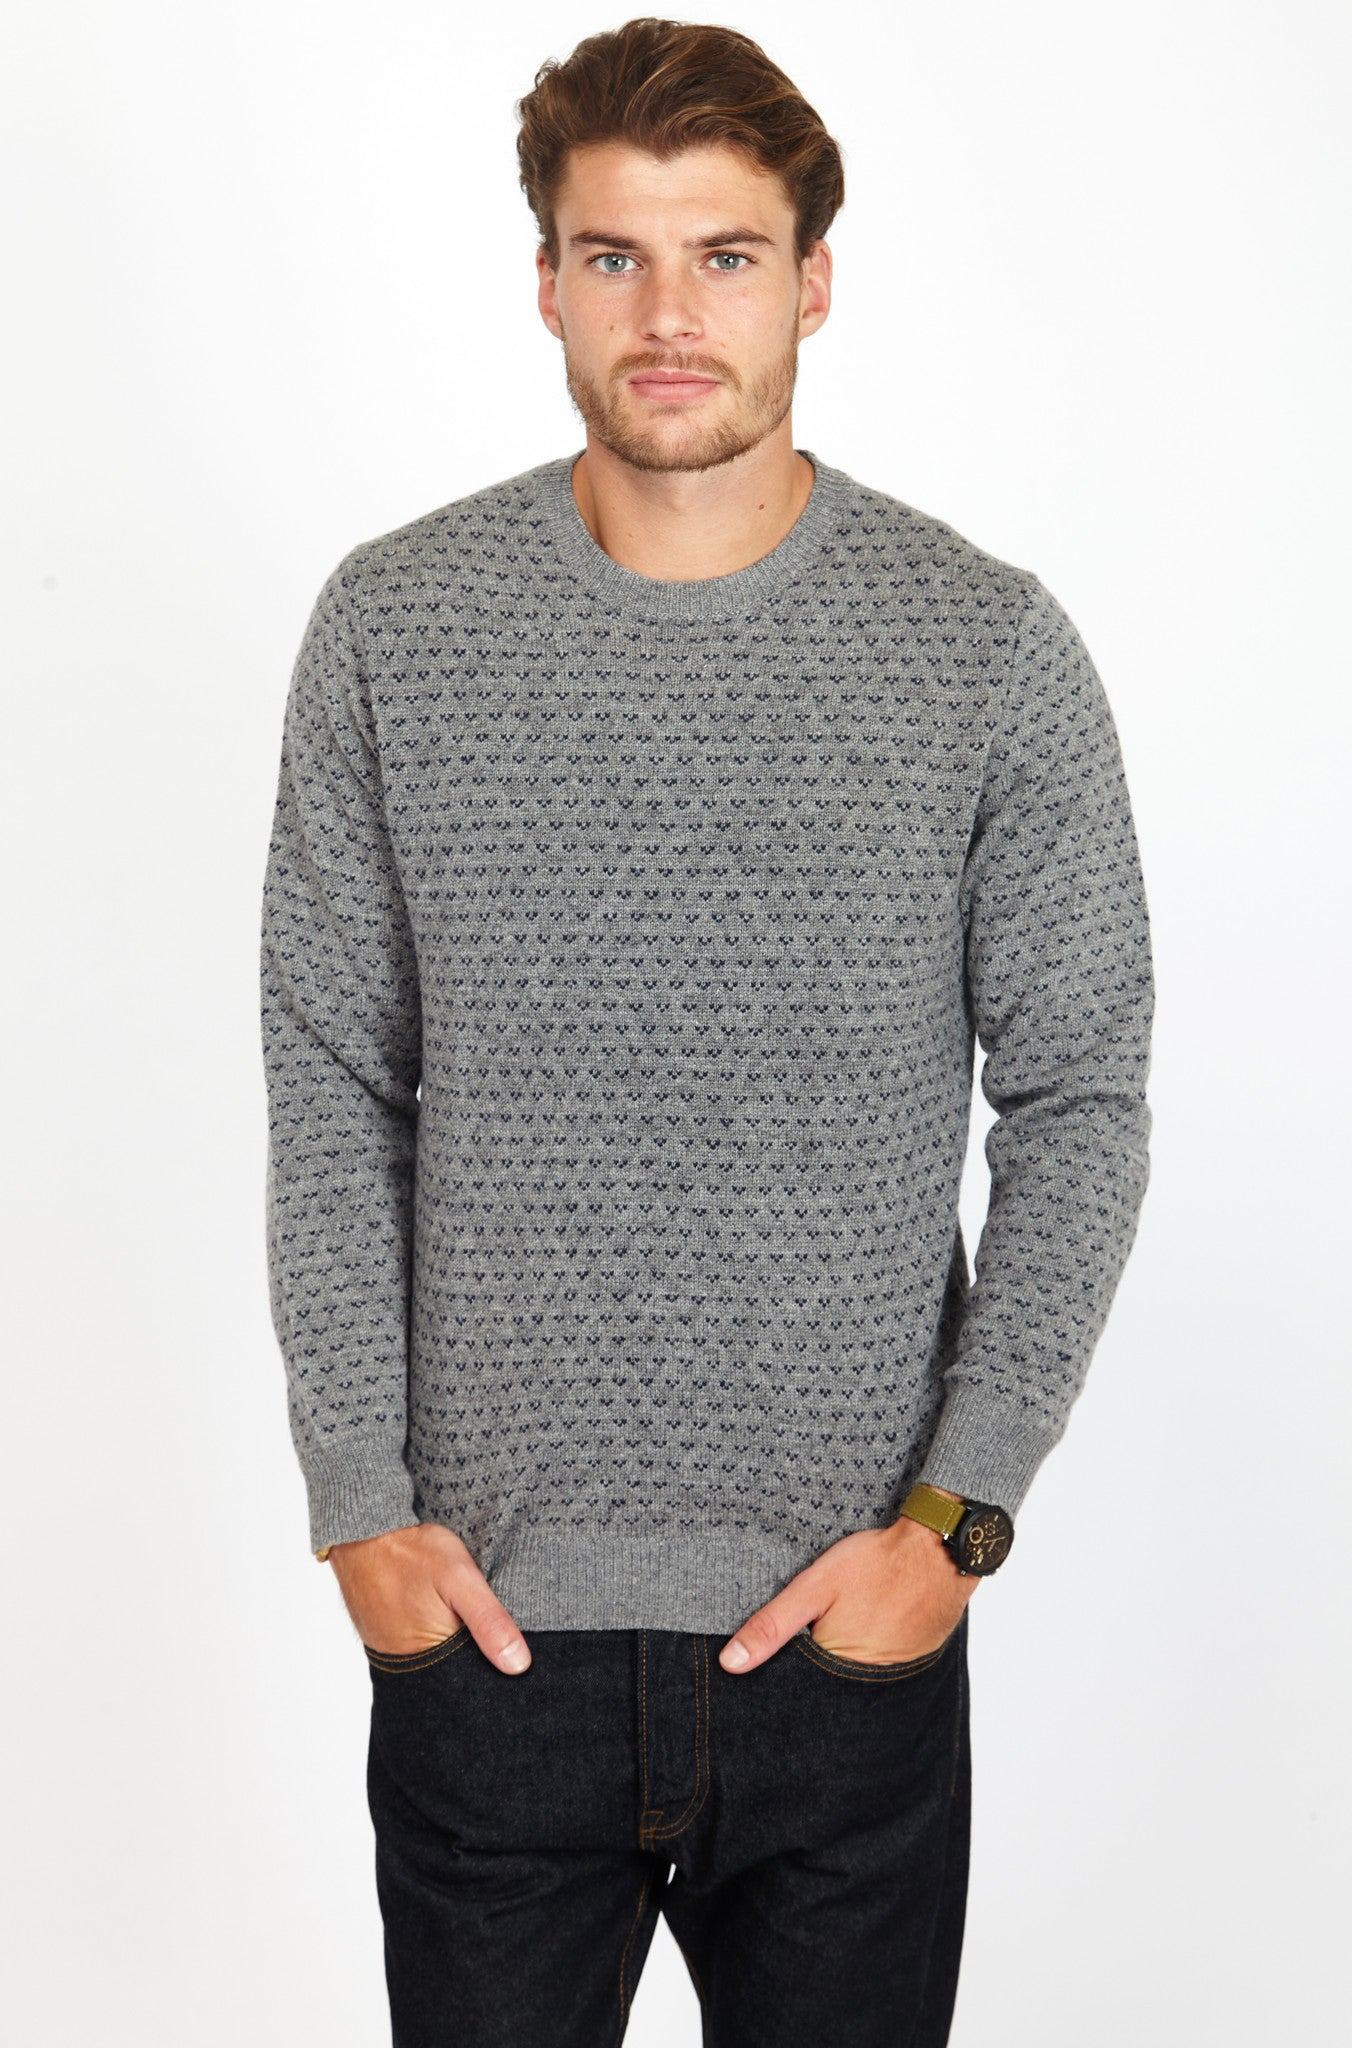 JS 100% wool round neck